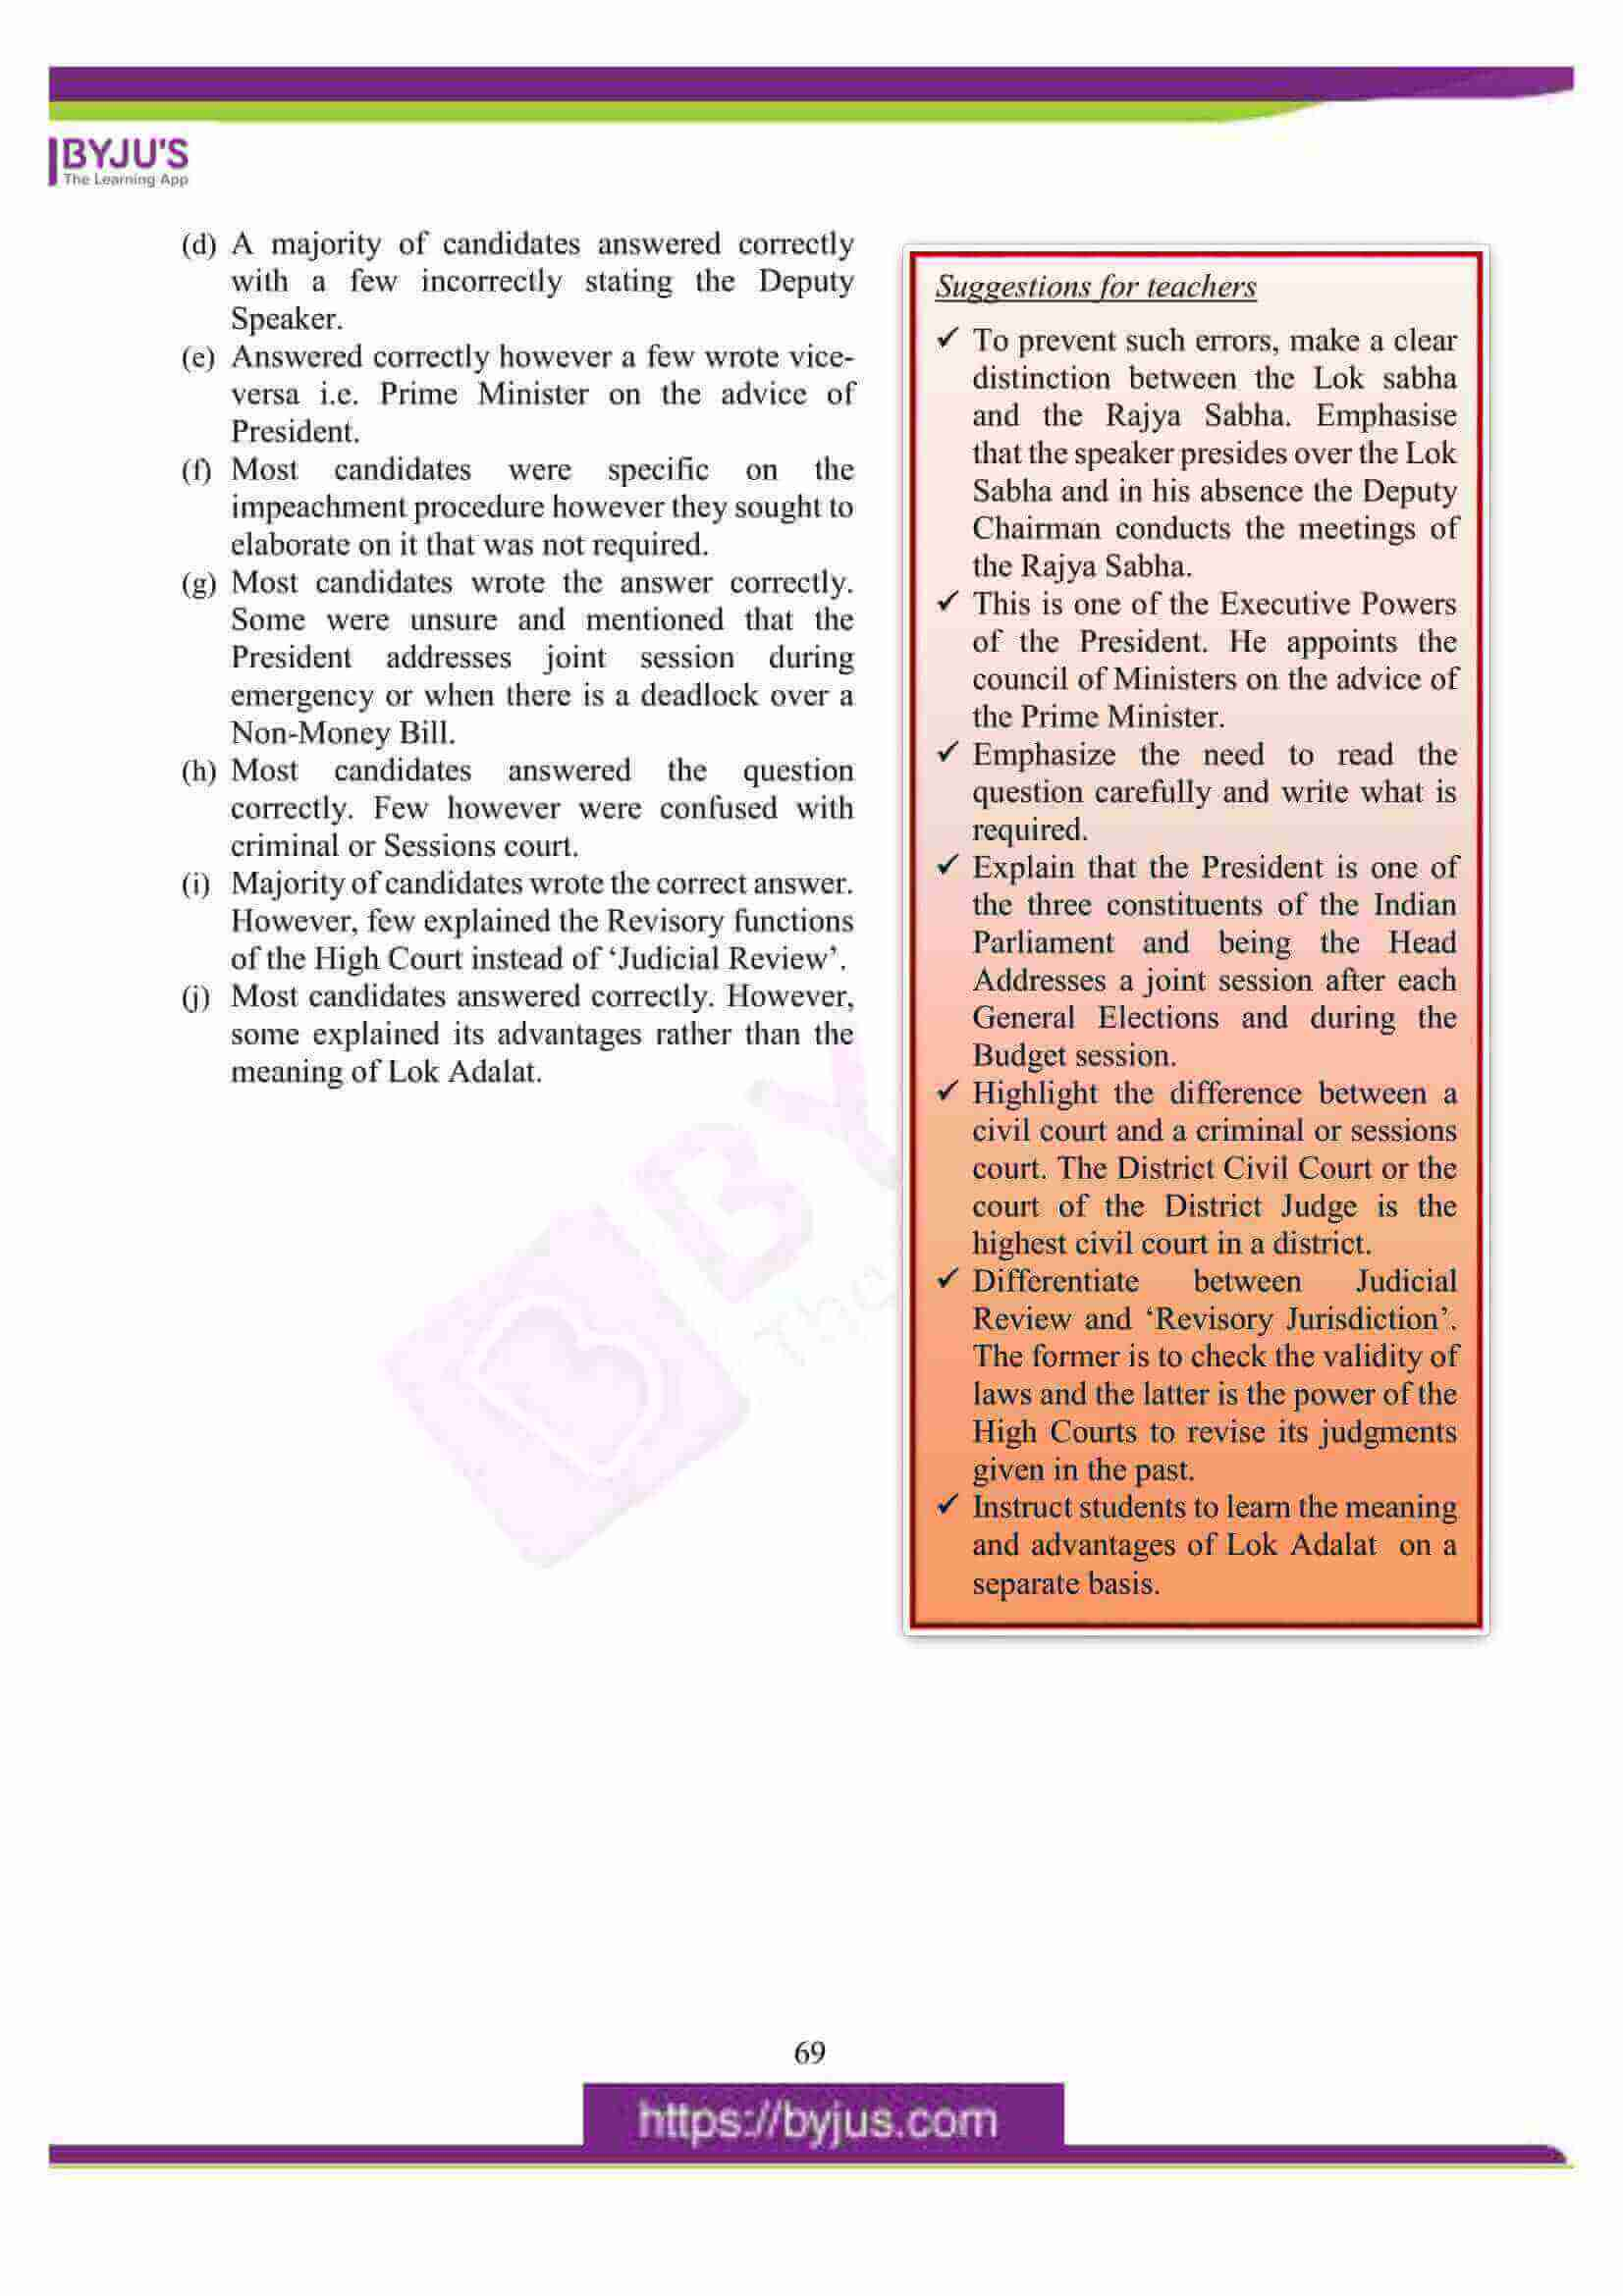 icse class 10 his and civics question paper solution 2016 02